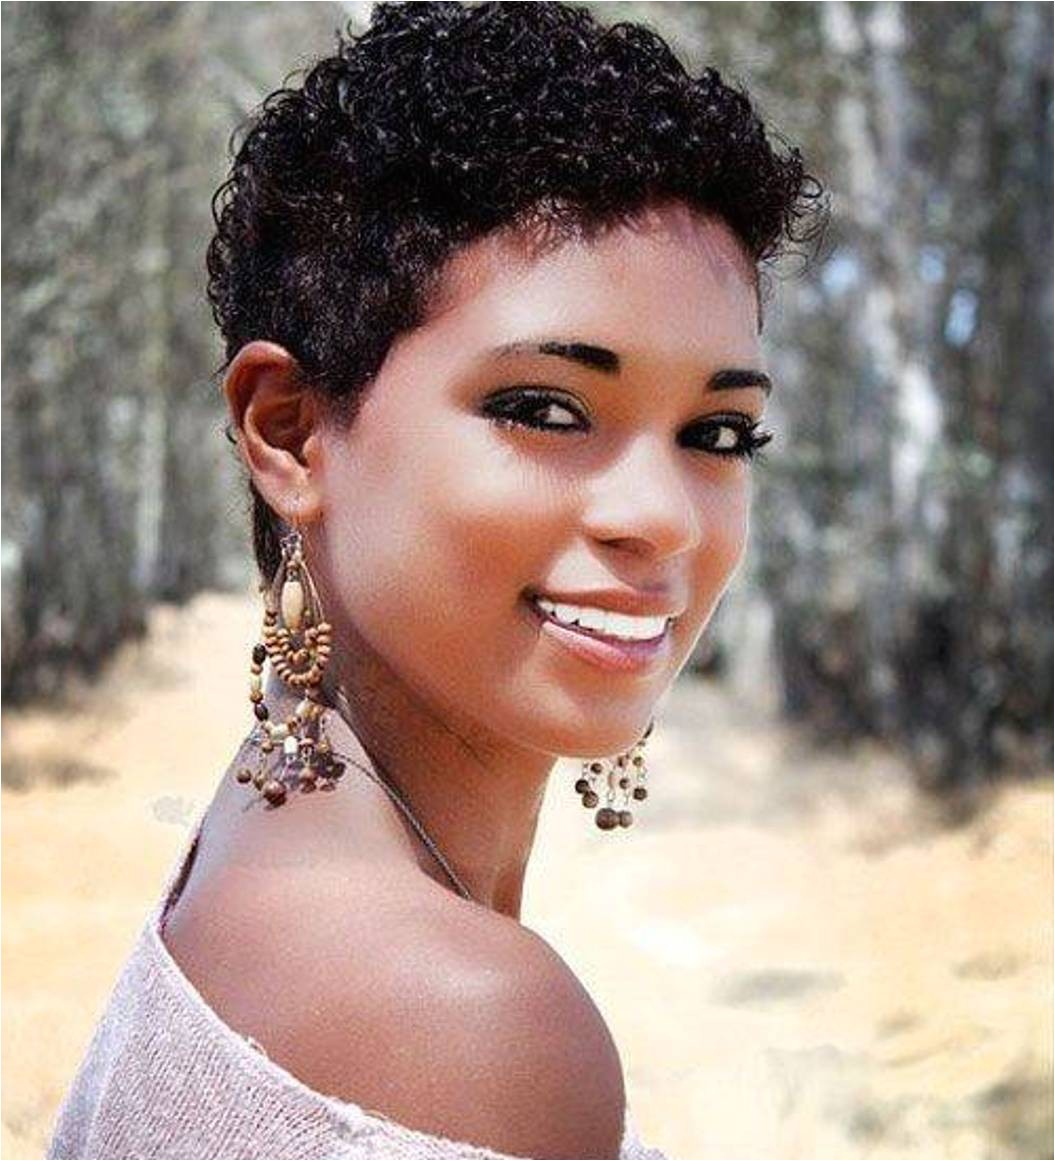 Looking for Short Black Hairstyles Short Natural Hairstyles for Black Women the Xerxes